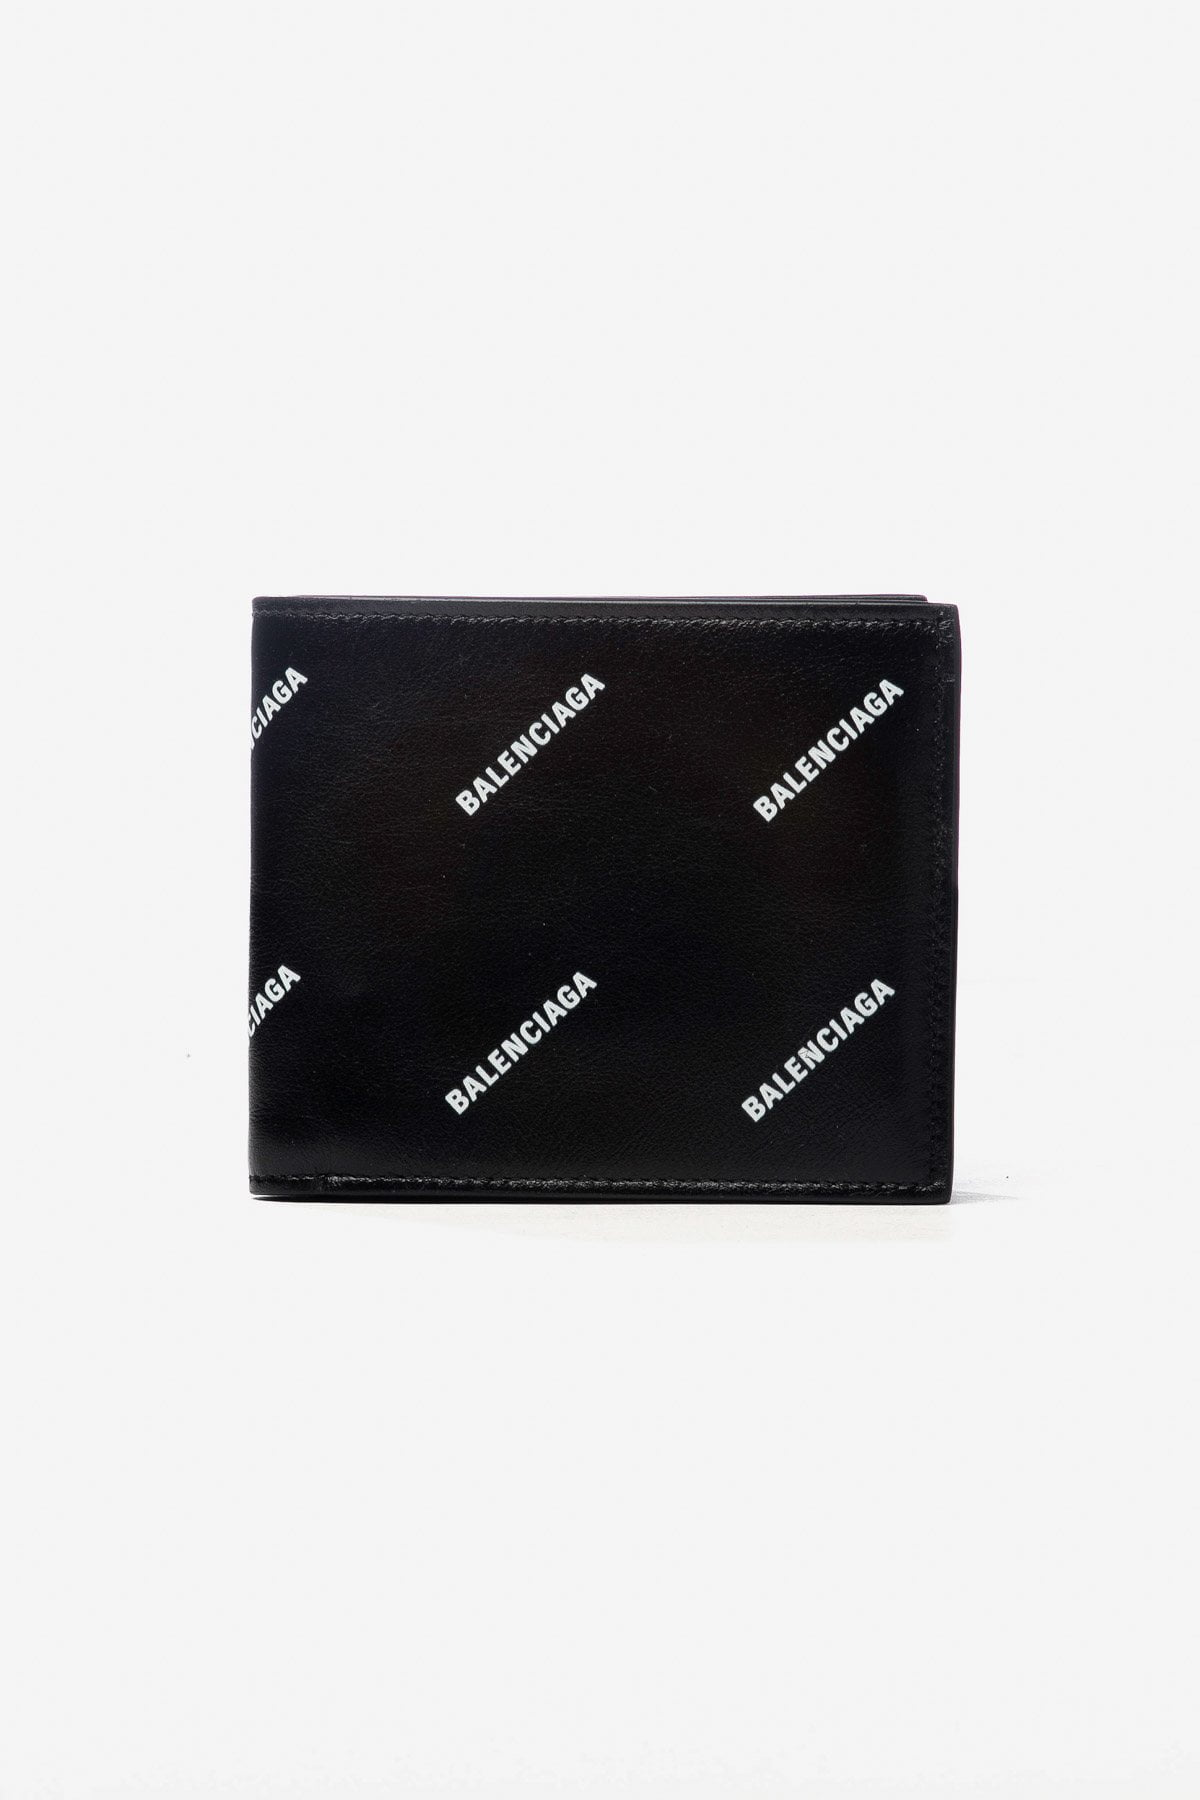 LOGO-PRINT LEATHER BI-FOLD WALLET